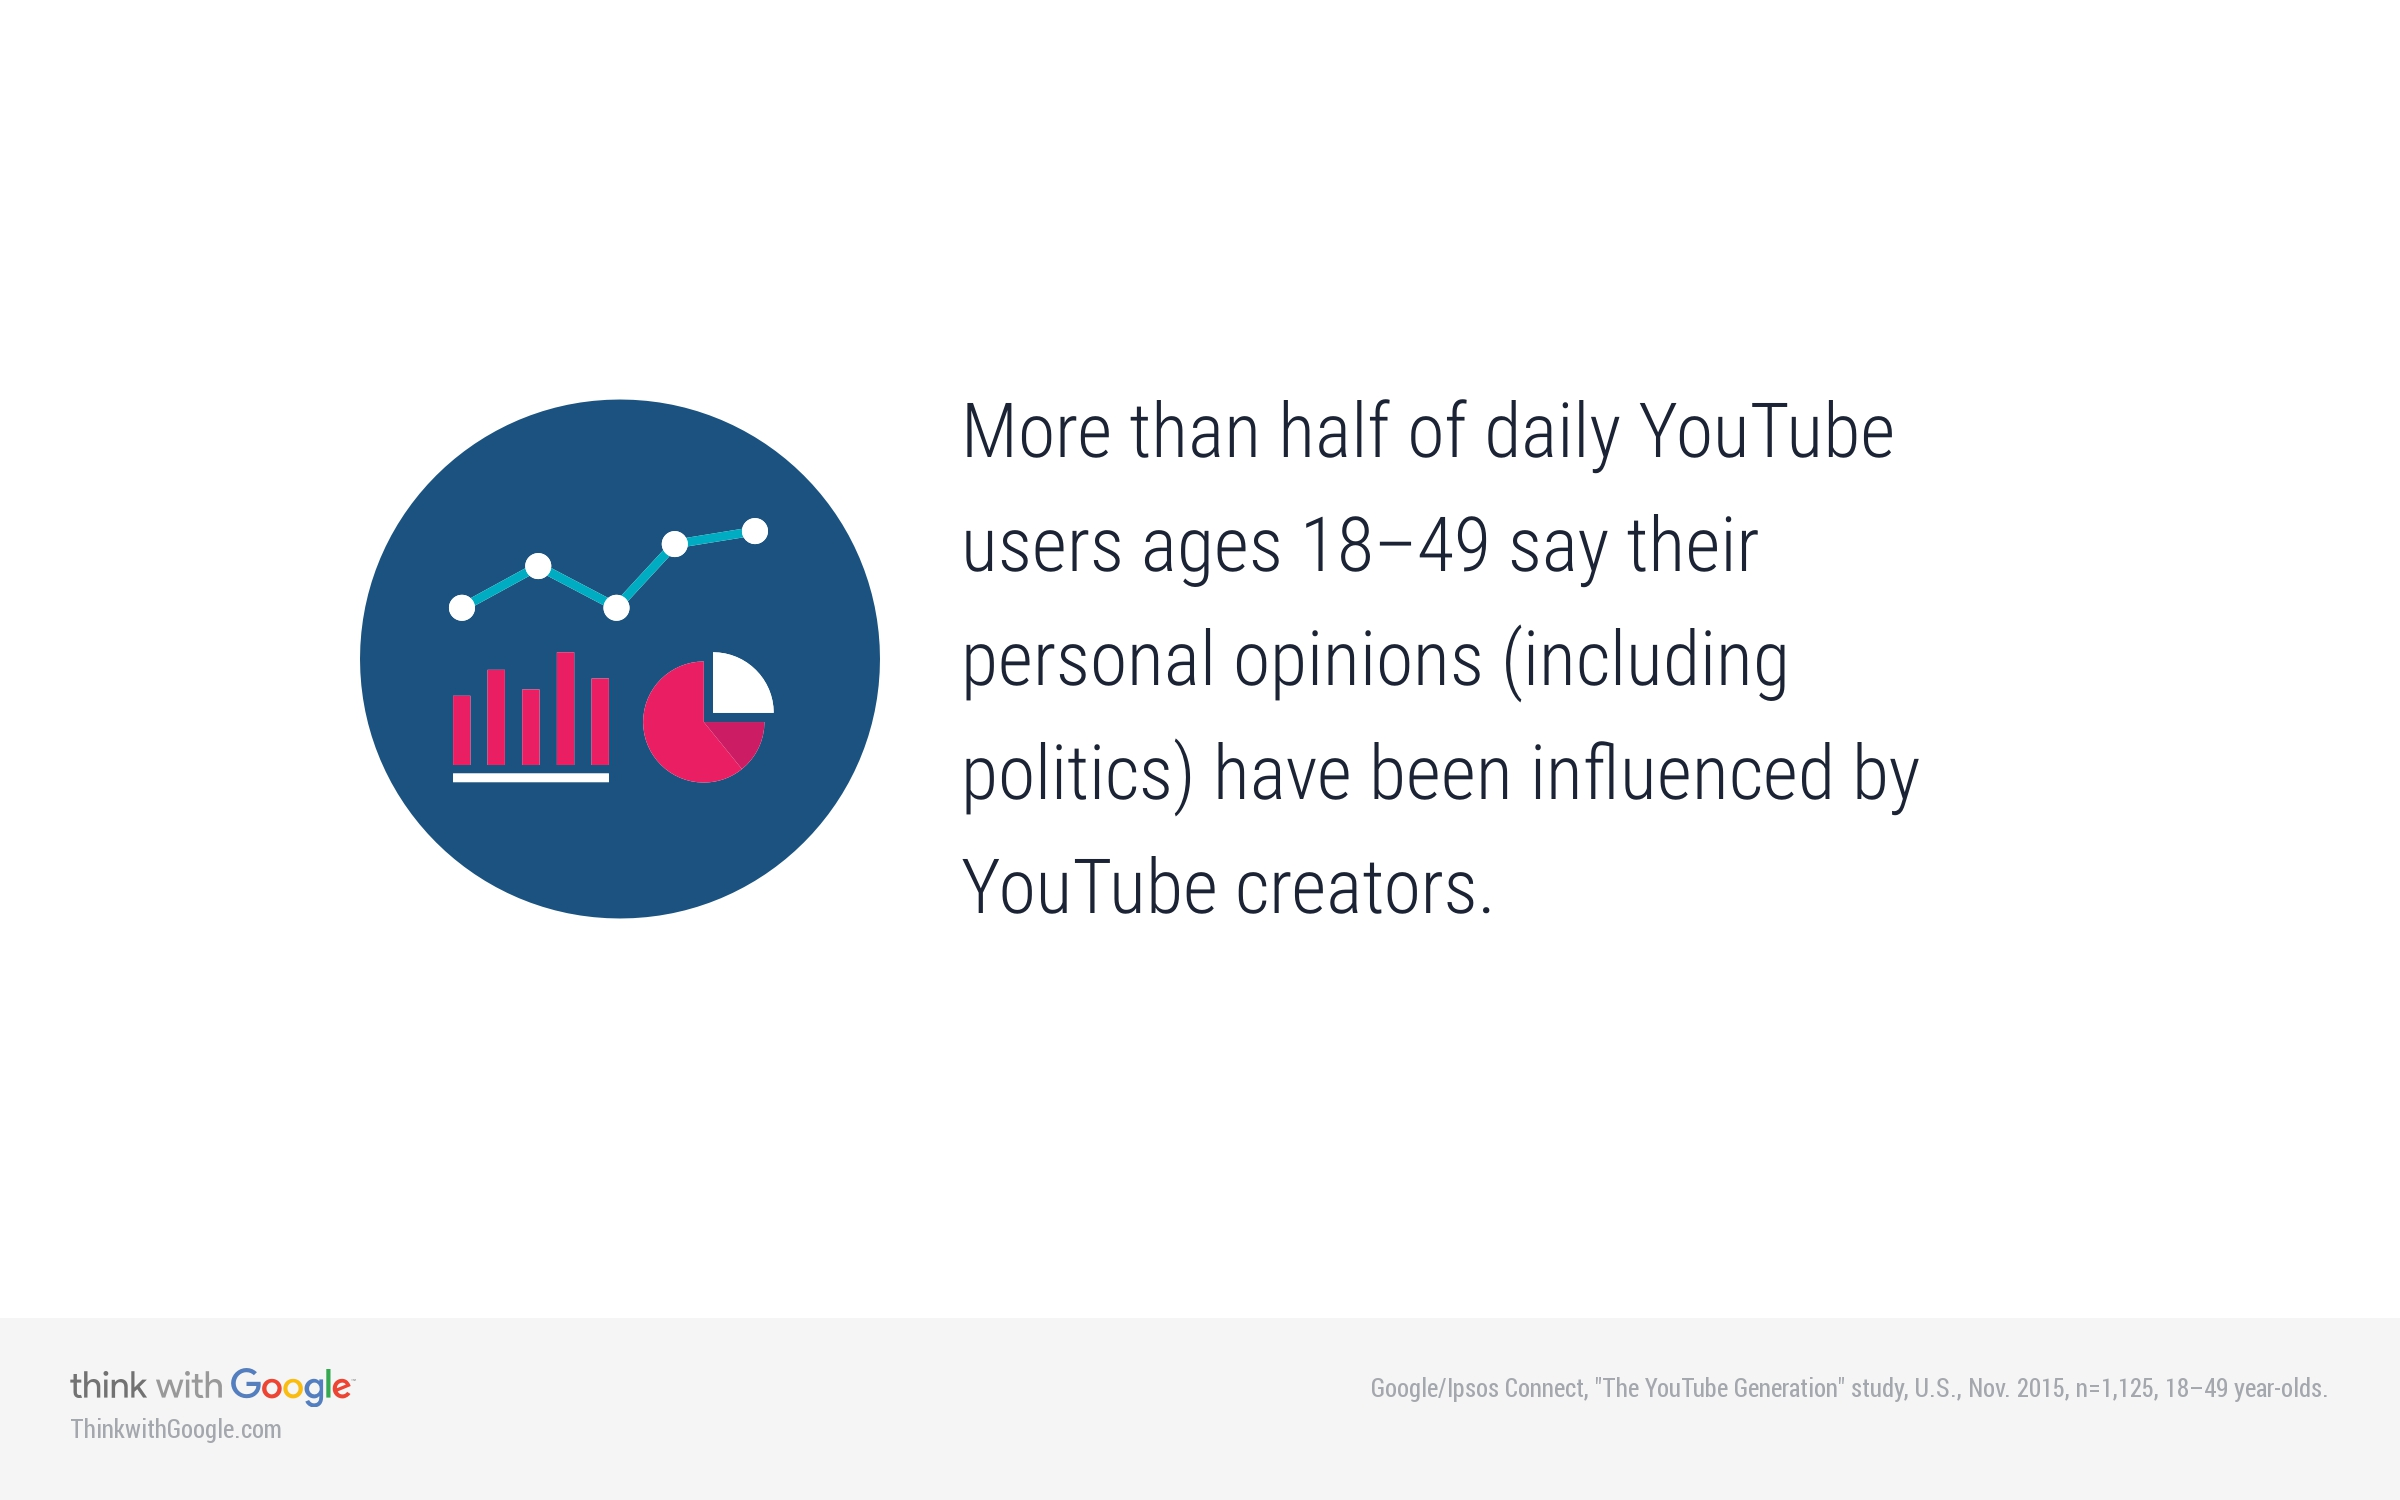 youtube-creator-influence-on-political-opinions (1)